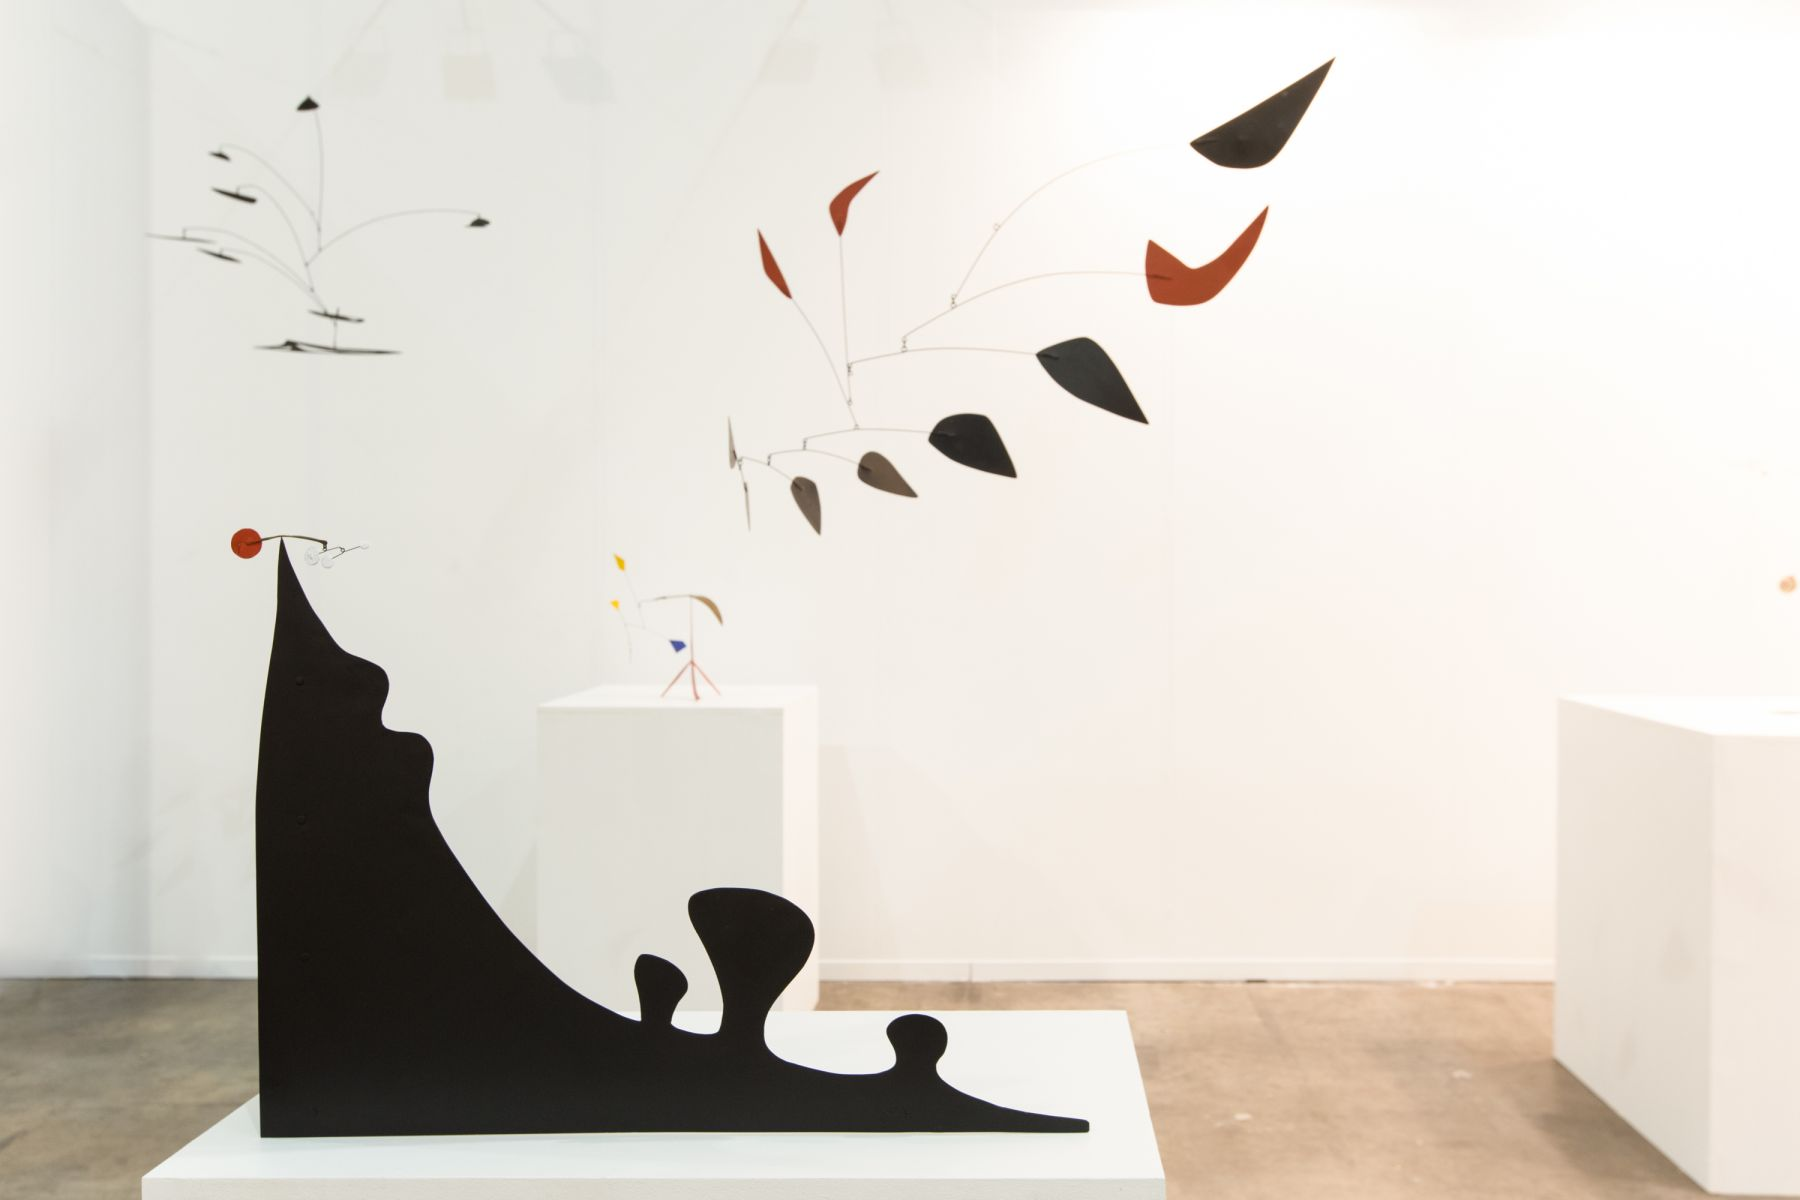 Installation view of Alexander Calder at Zona Maco, Mexico City, 2016